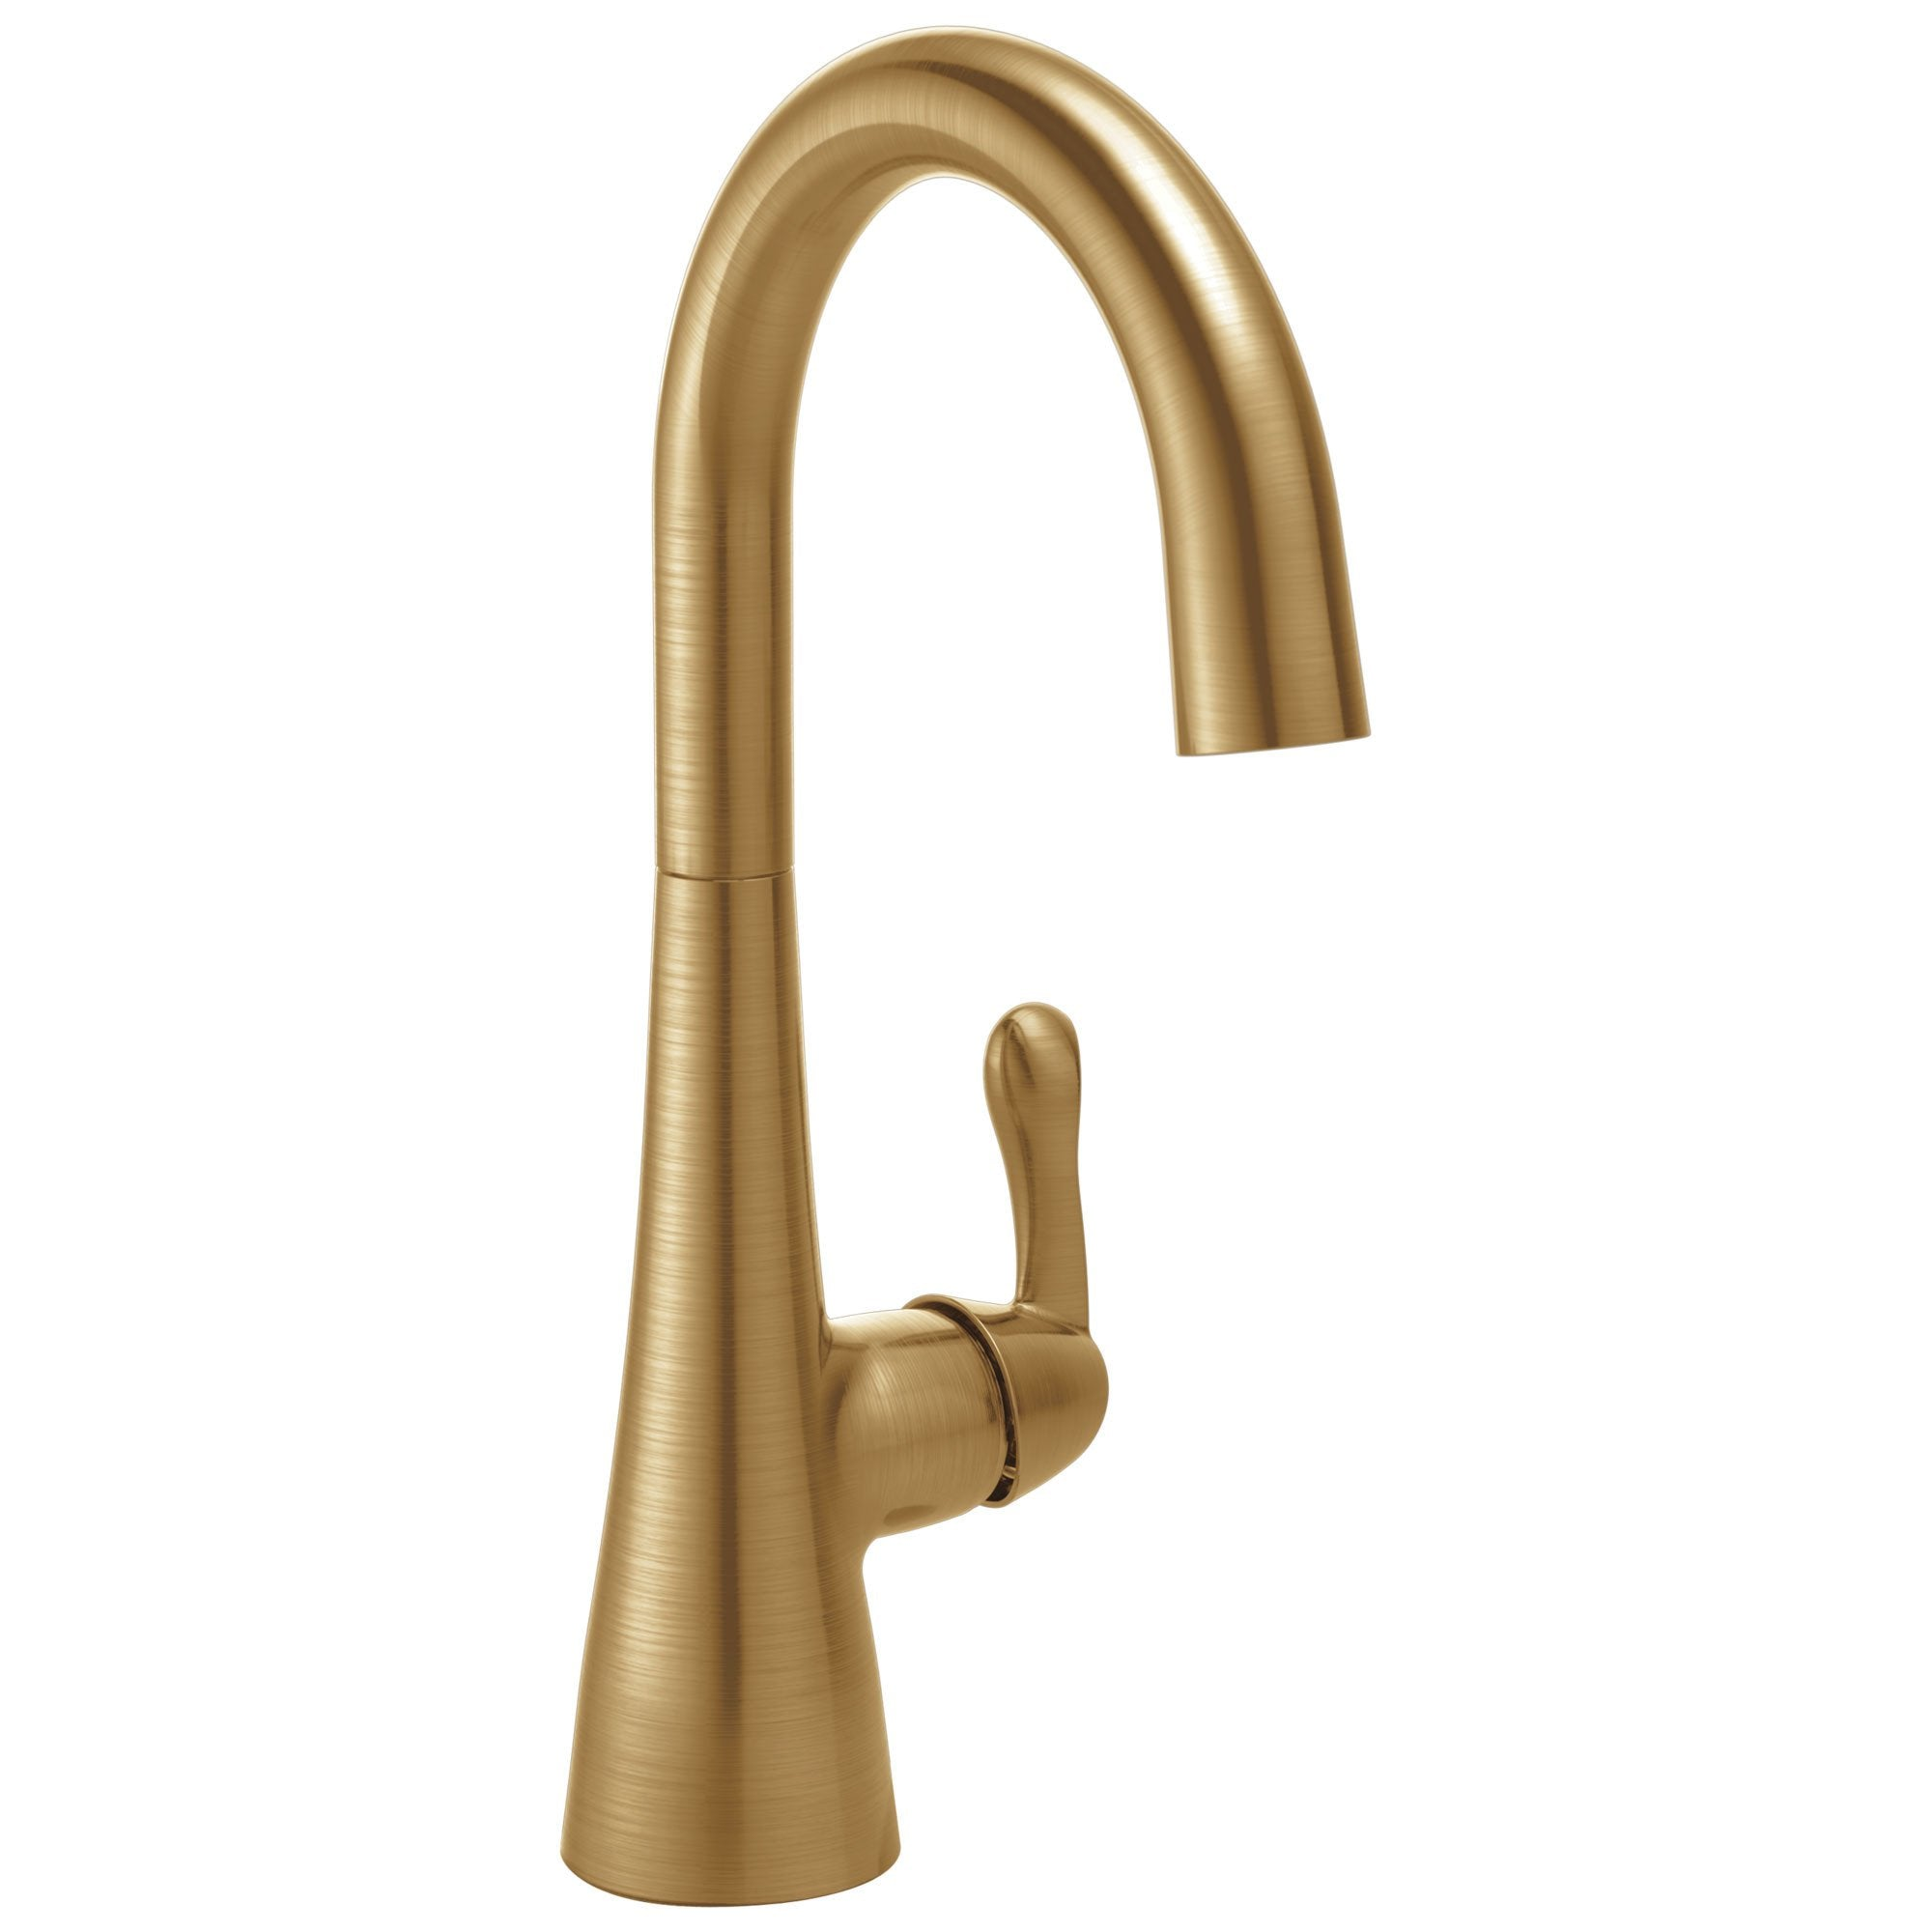 Delta Champagne Bronze Finish Single Lever Handle 360-degree Swivel Spout Contemporary Water Efficient Bar Sink Faucet 729152